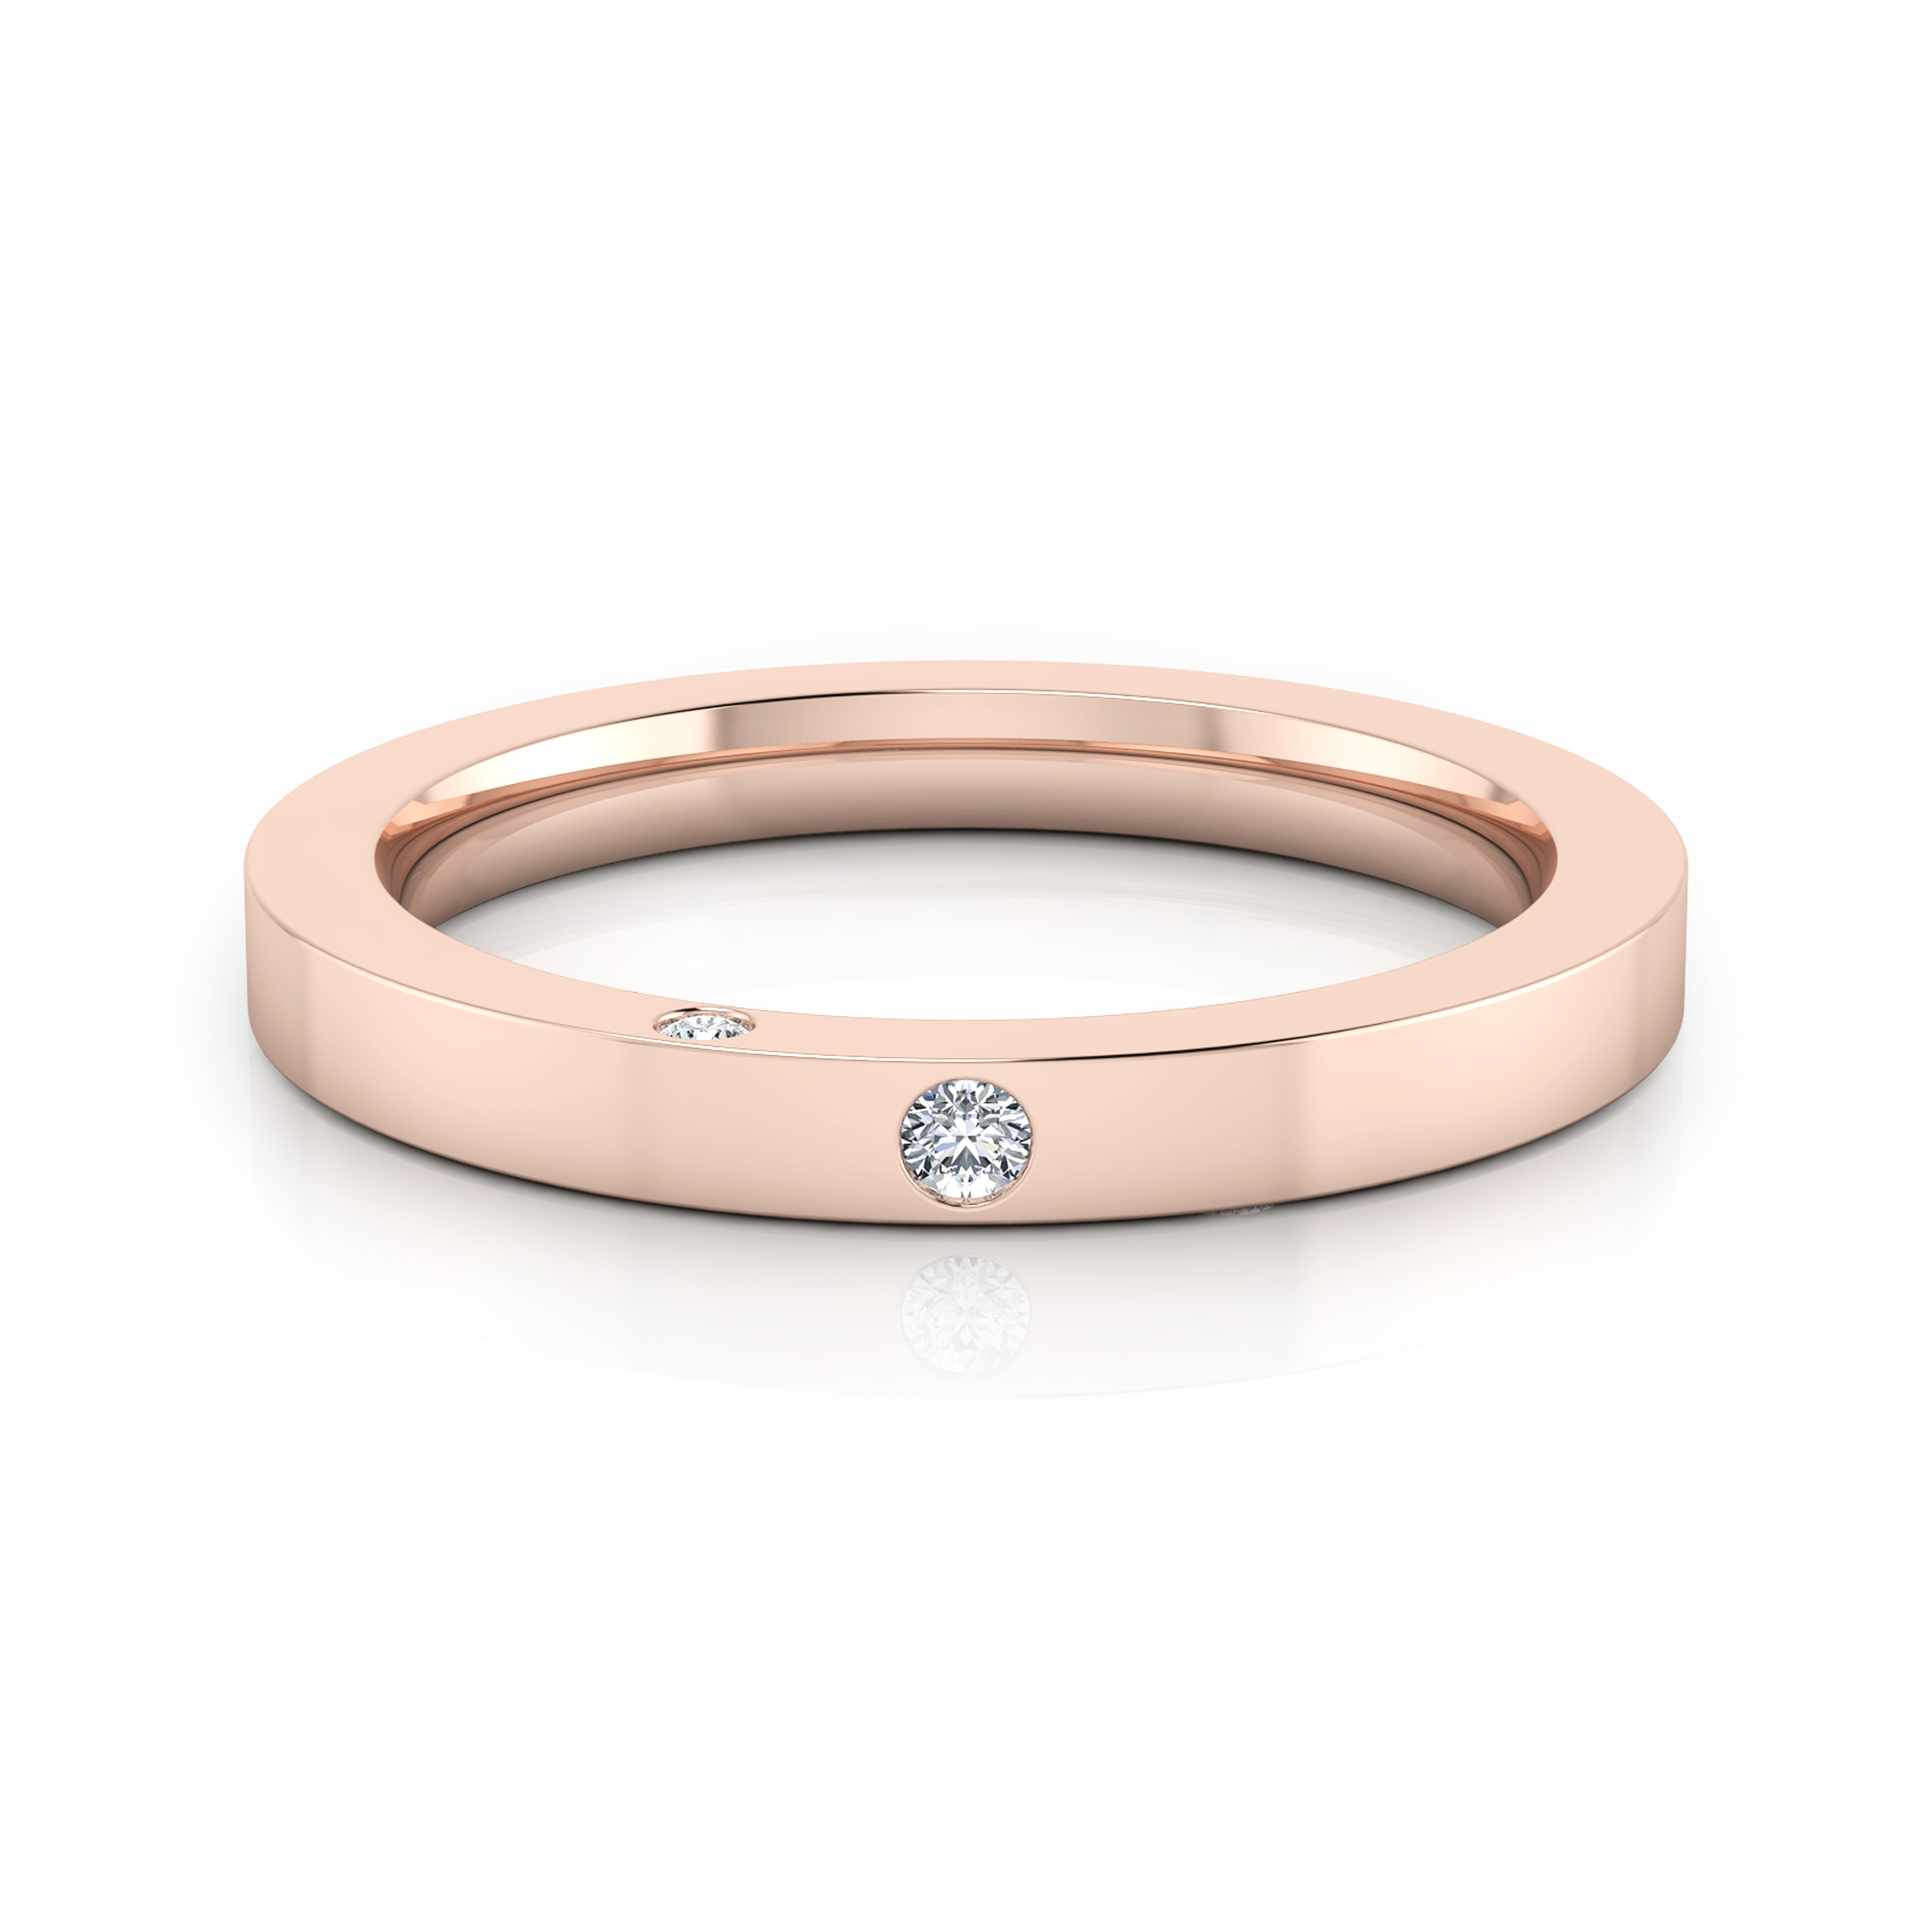 Wedding Ring 18k pink gold 1 brilliant cut diamond